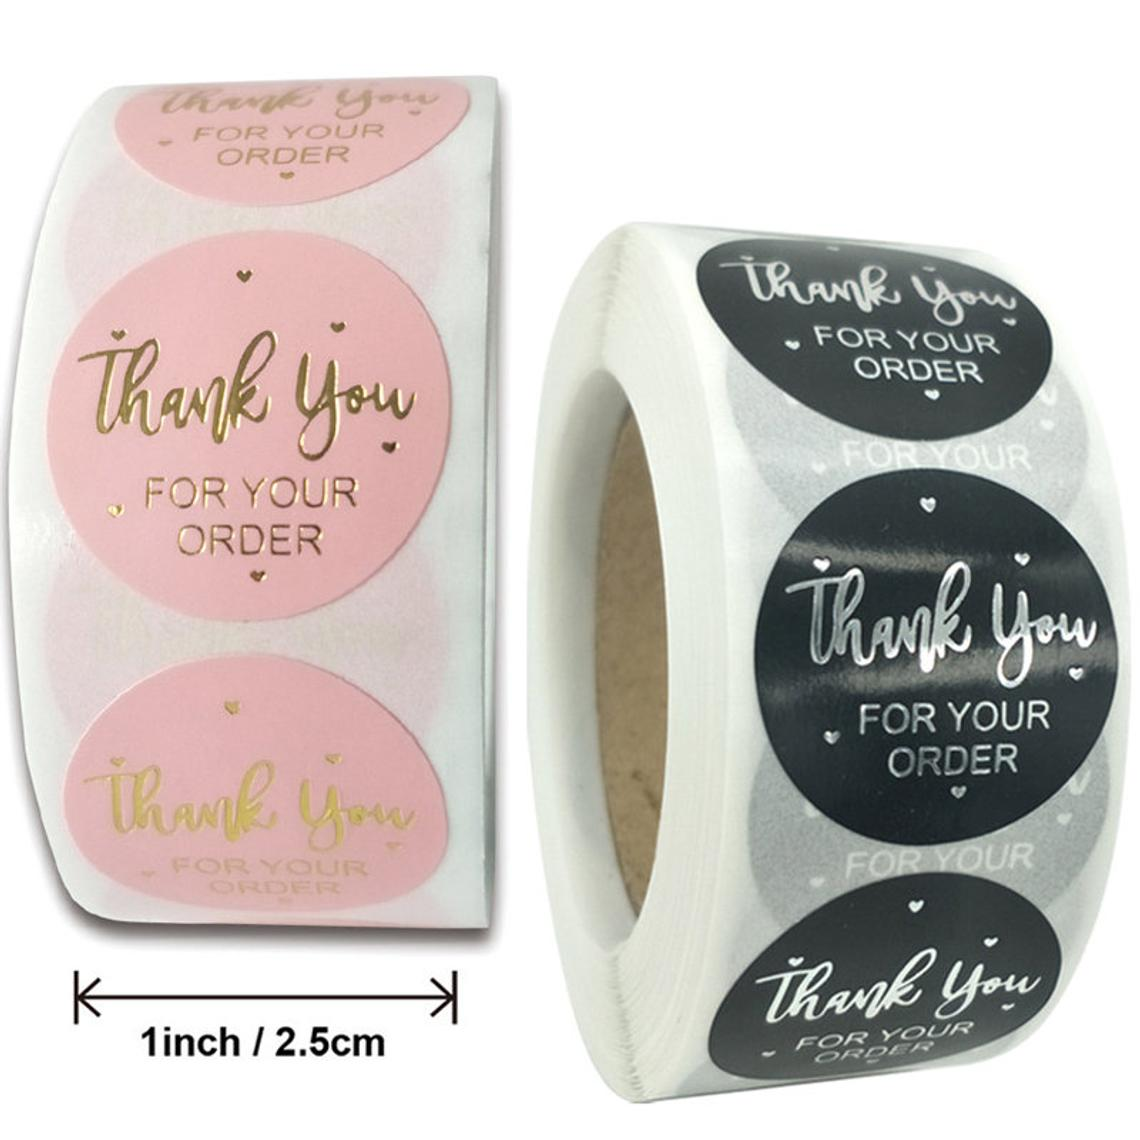 1Thank You Stickers 16 Designs 1000pc Thank You Labels Stickers for Business Packaging,Gift Bags,Boxes,Tissue Ideal for Crafters /& Online Sales